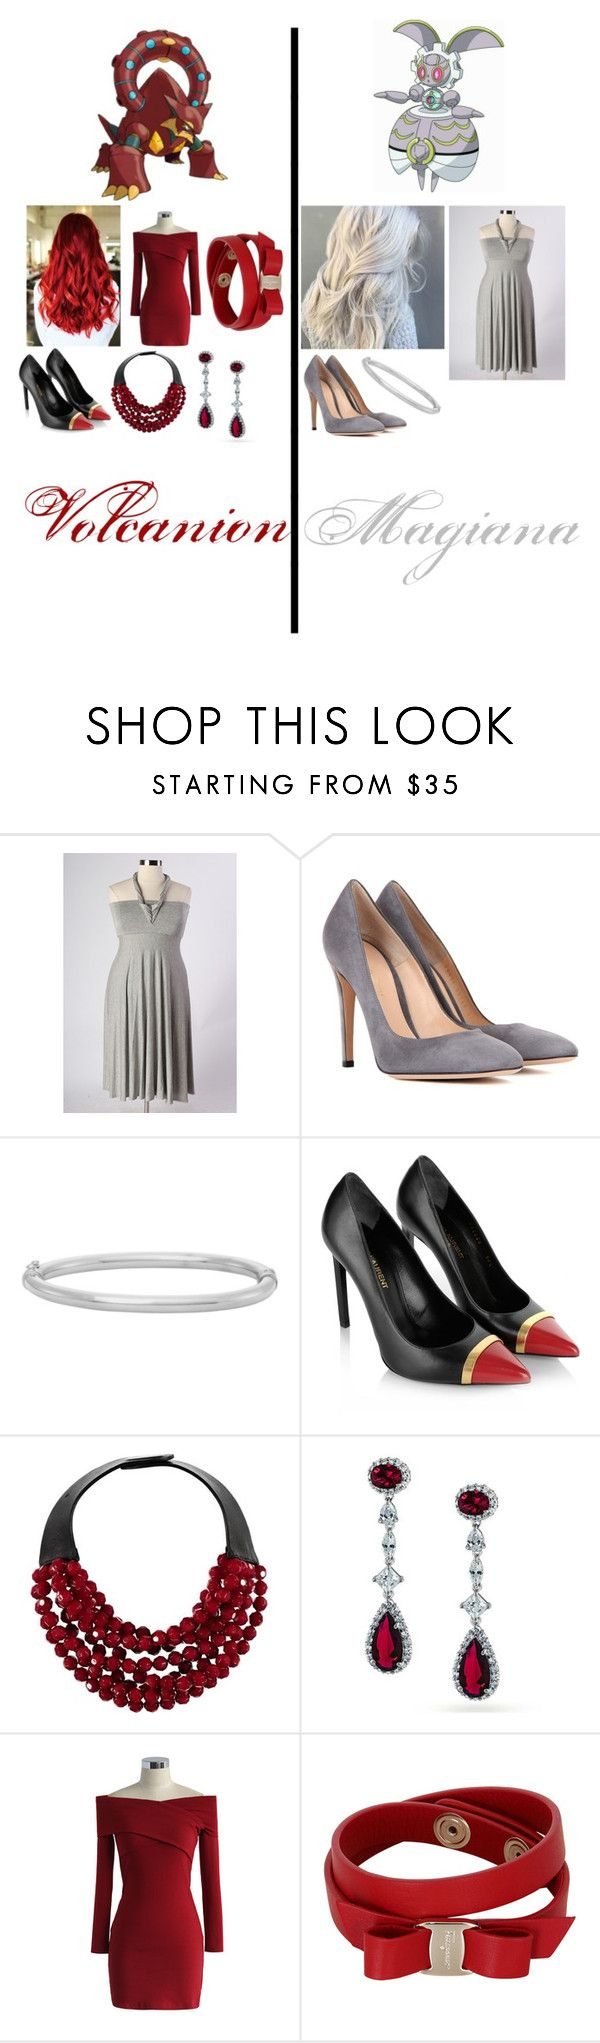 """""""Pokemon - Volcanion and Magiana"""" by queen-taylor-brie ❤ liked on Polyvore featuring Gianvito Rossi, Yves Saint Laurent, Fairchild Baldwin, Bling Jewelry, Chicwish and Salvatore Ferragamo"""